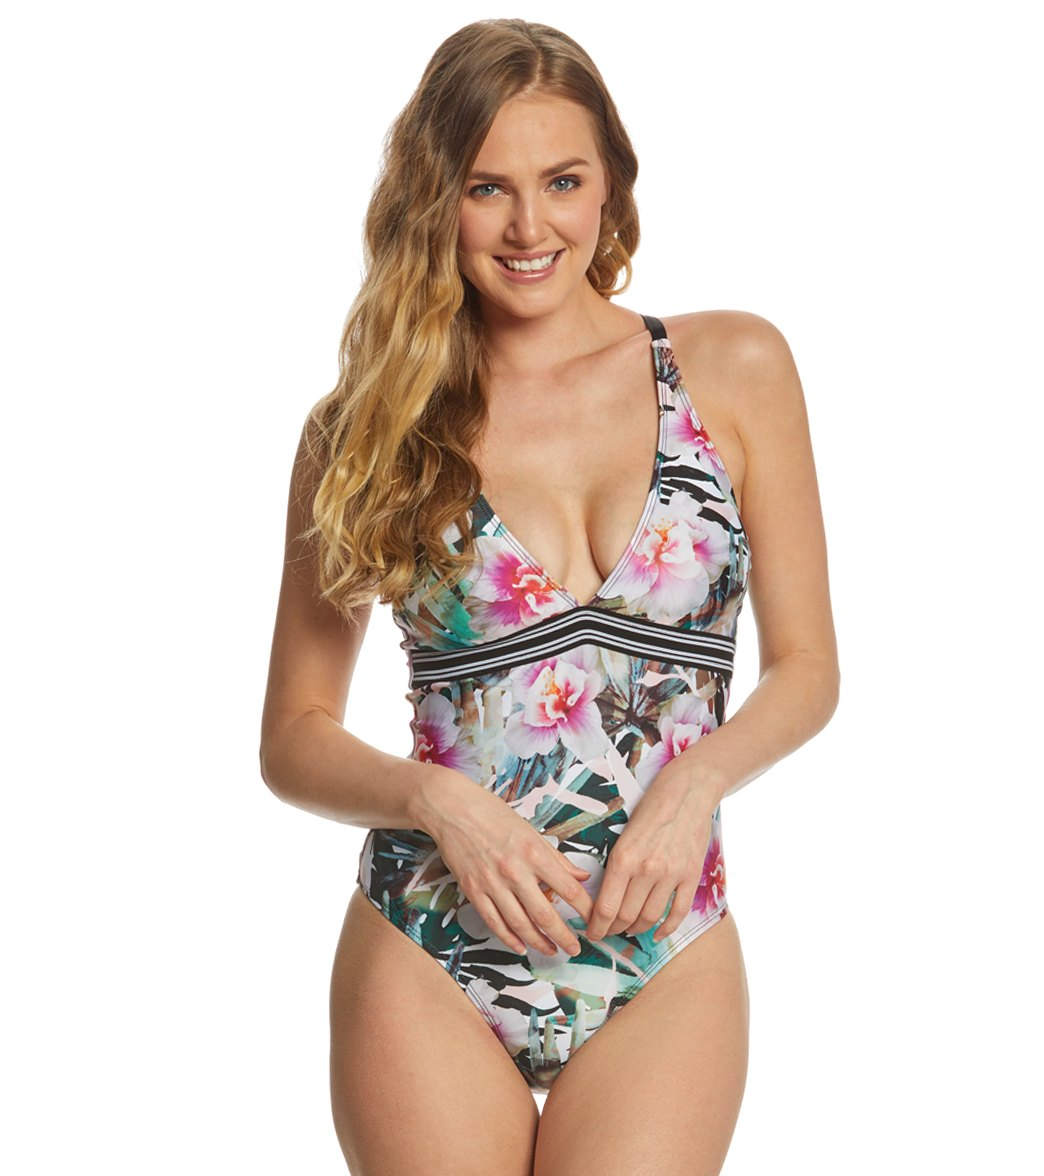 3bbd9f1144406 Next Undercover Tropics Apex One Piece Swimsuit at SwimOutlet.com - Free  Shipping